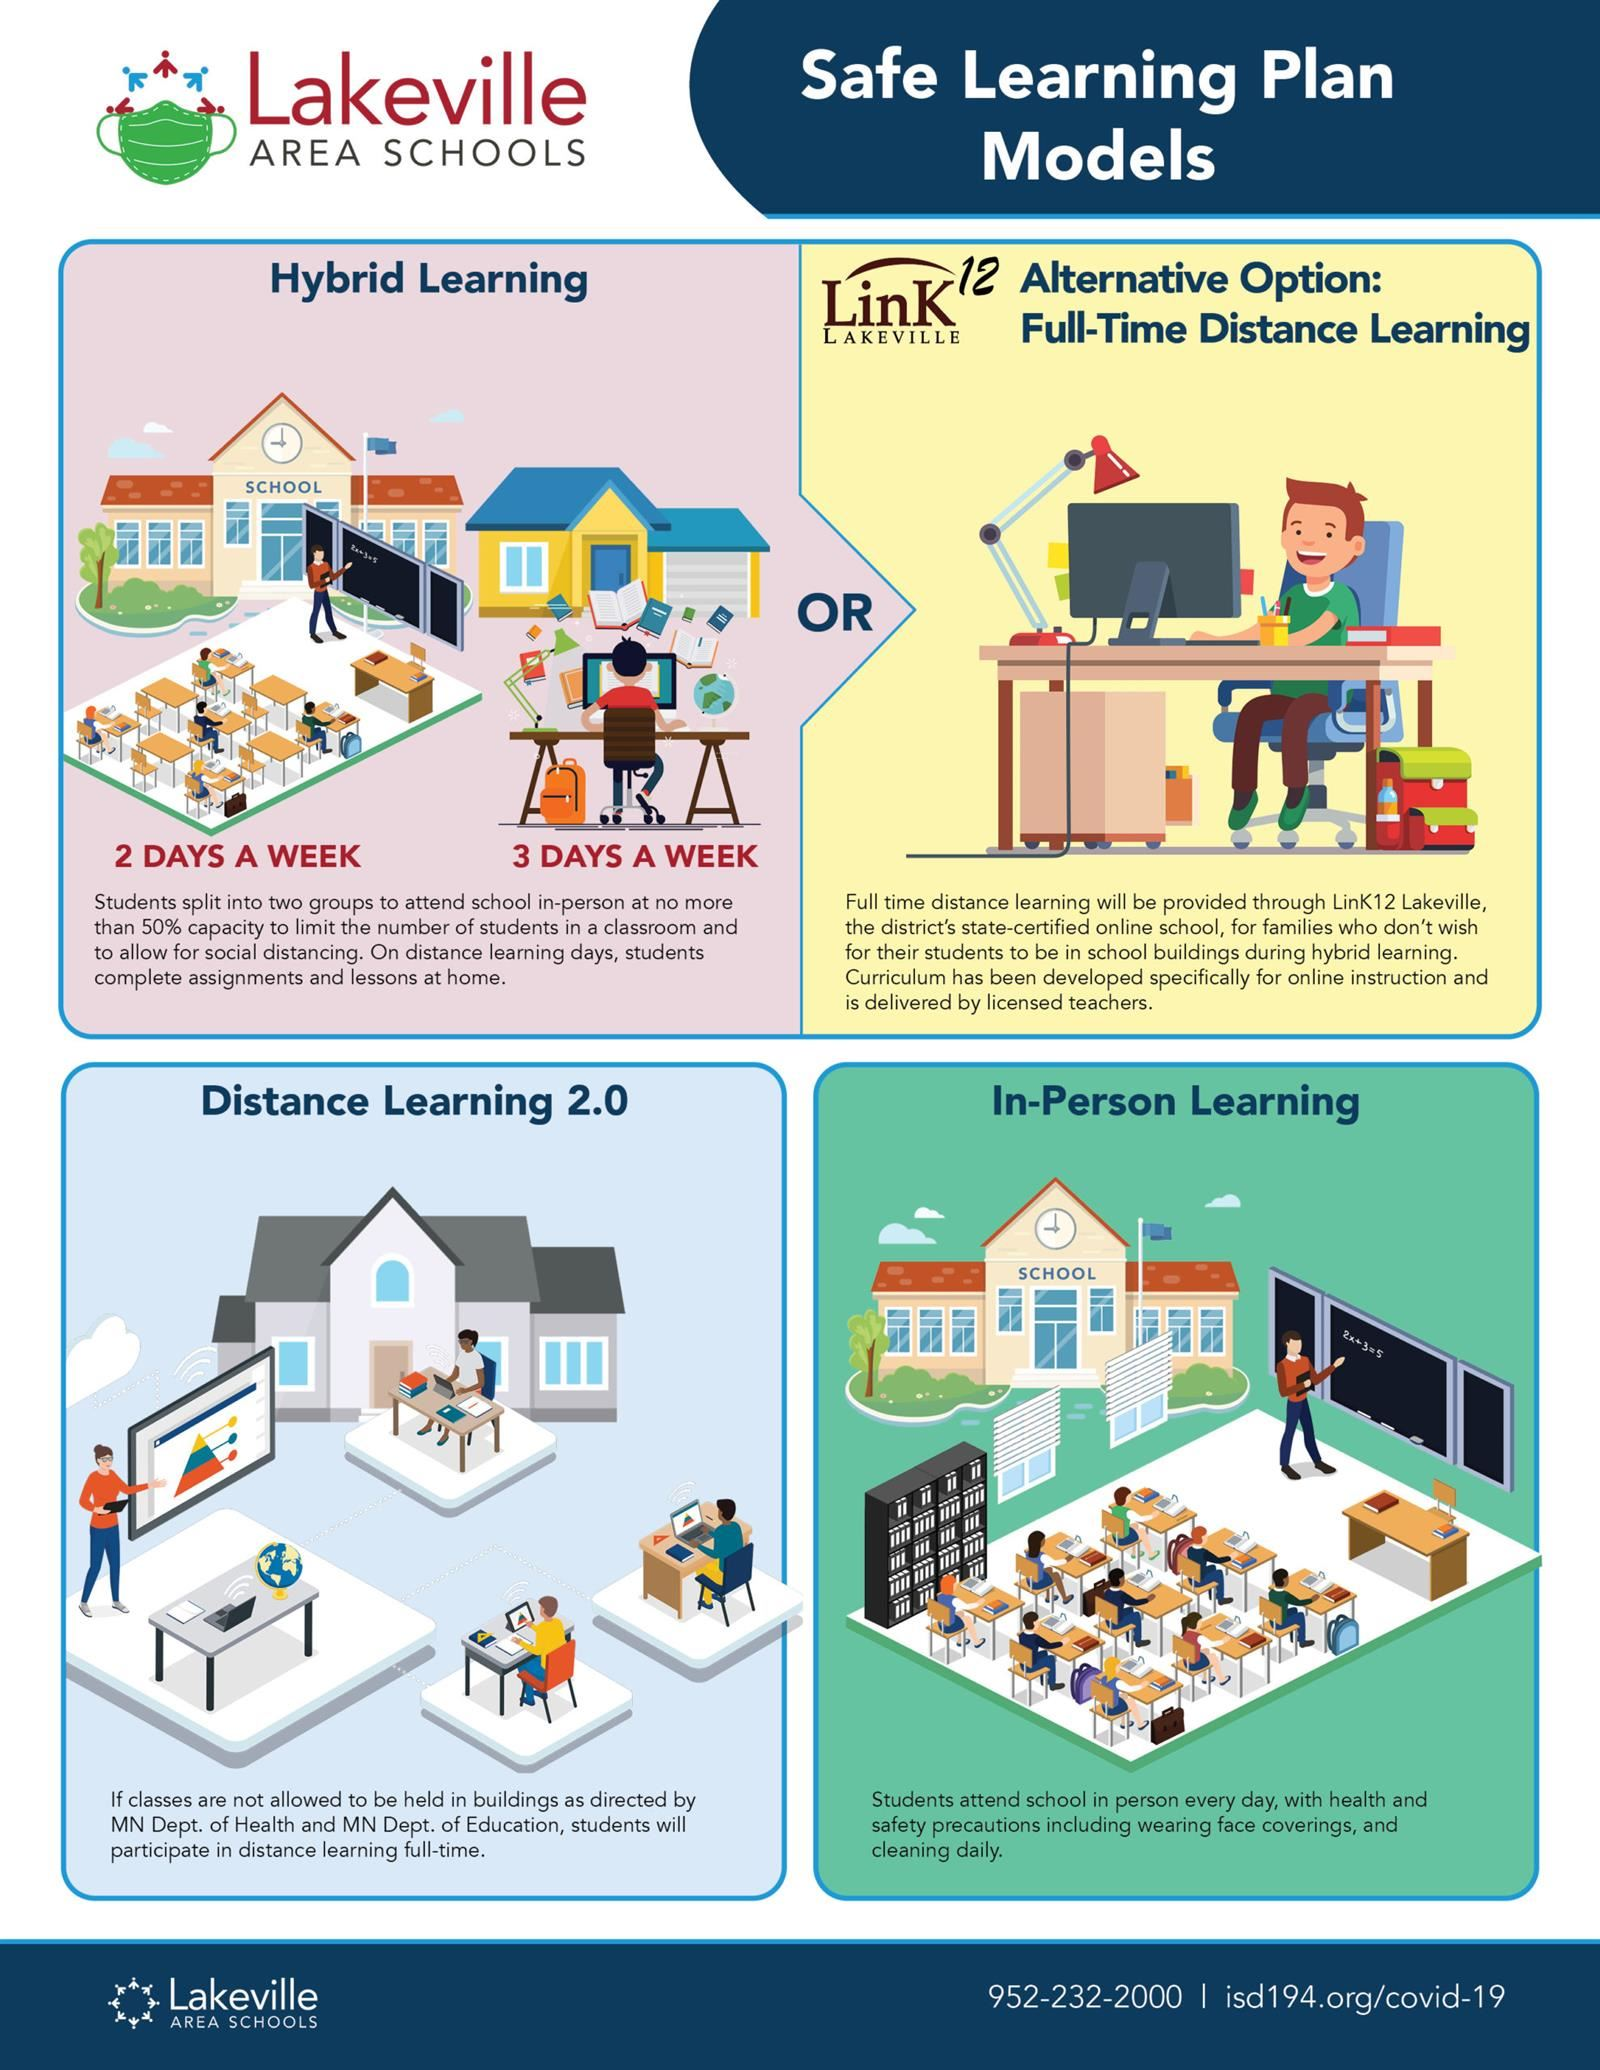 Overview of learning models: Hybrid Learning, Distance Learning, or In-Person Learning